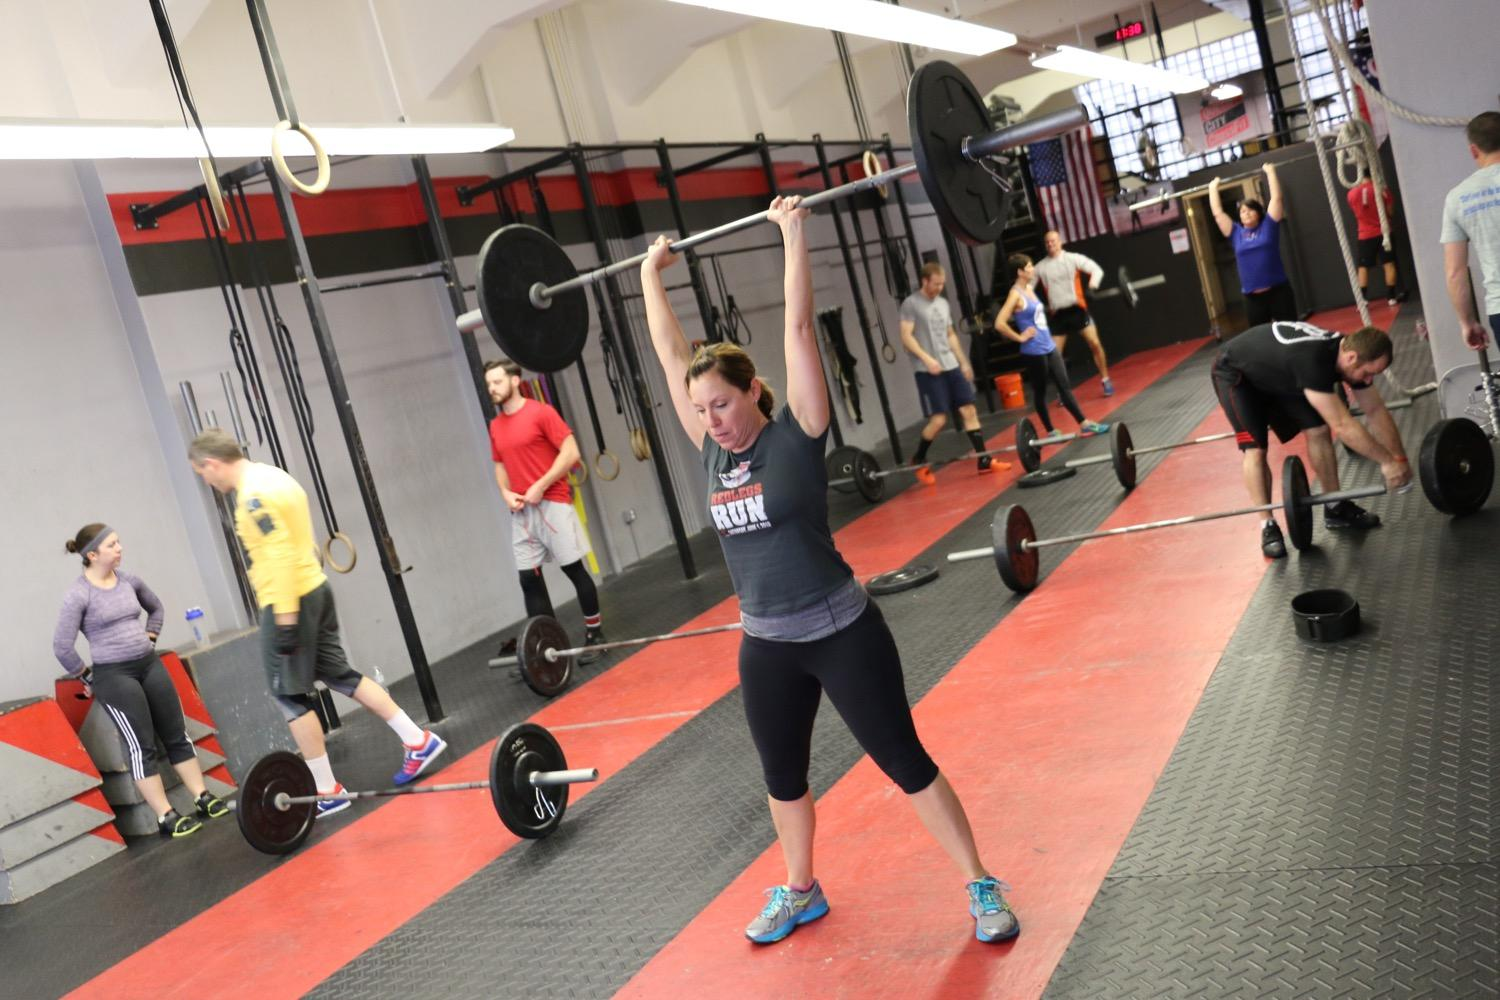 CrossFit has a bit of it all: weight lifting, aerobic activity, calisthenics, and the best part—it's competitive. Hit up Queen City CrossFit to push your limit and become part of the CrossFit community in 2019. ADDRESS: 18 W 7th Street (45202) / Image: Leah Zipperstein // Published: 1.6.19